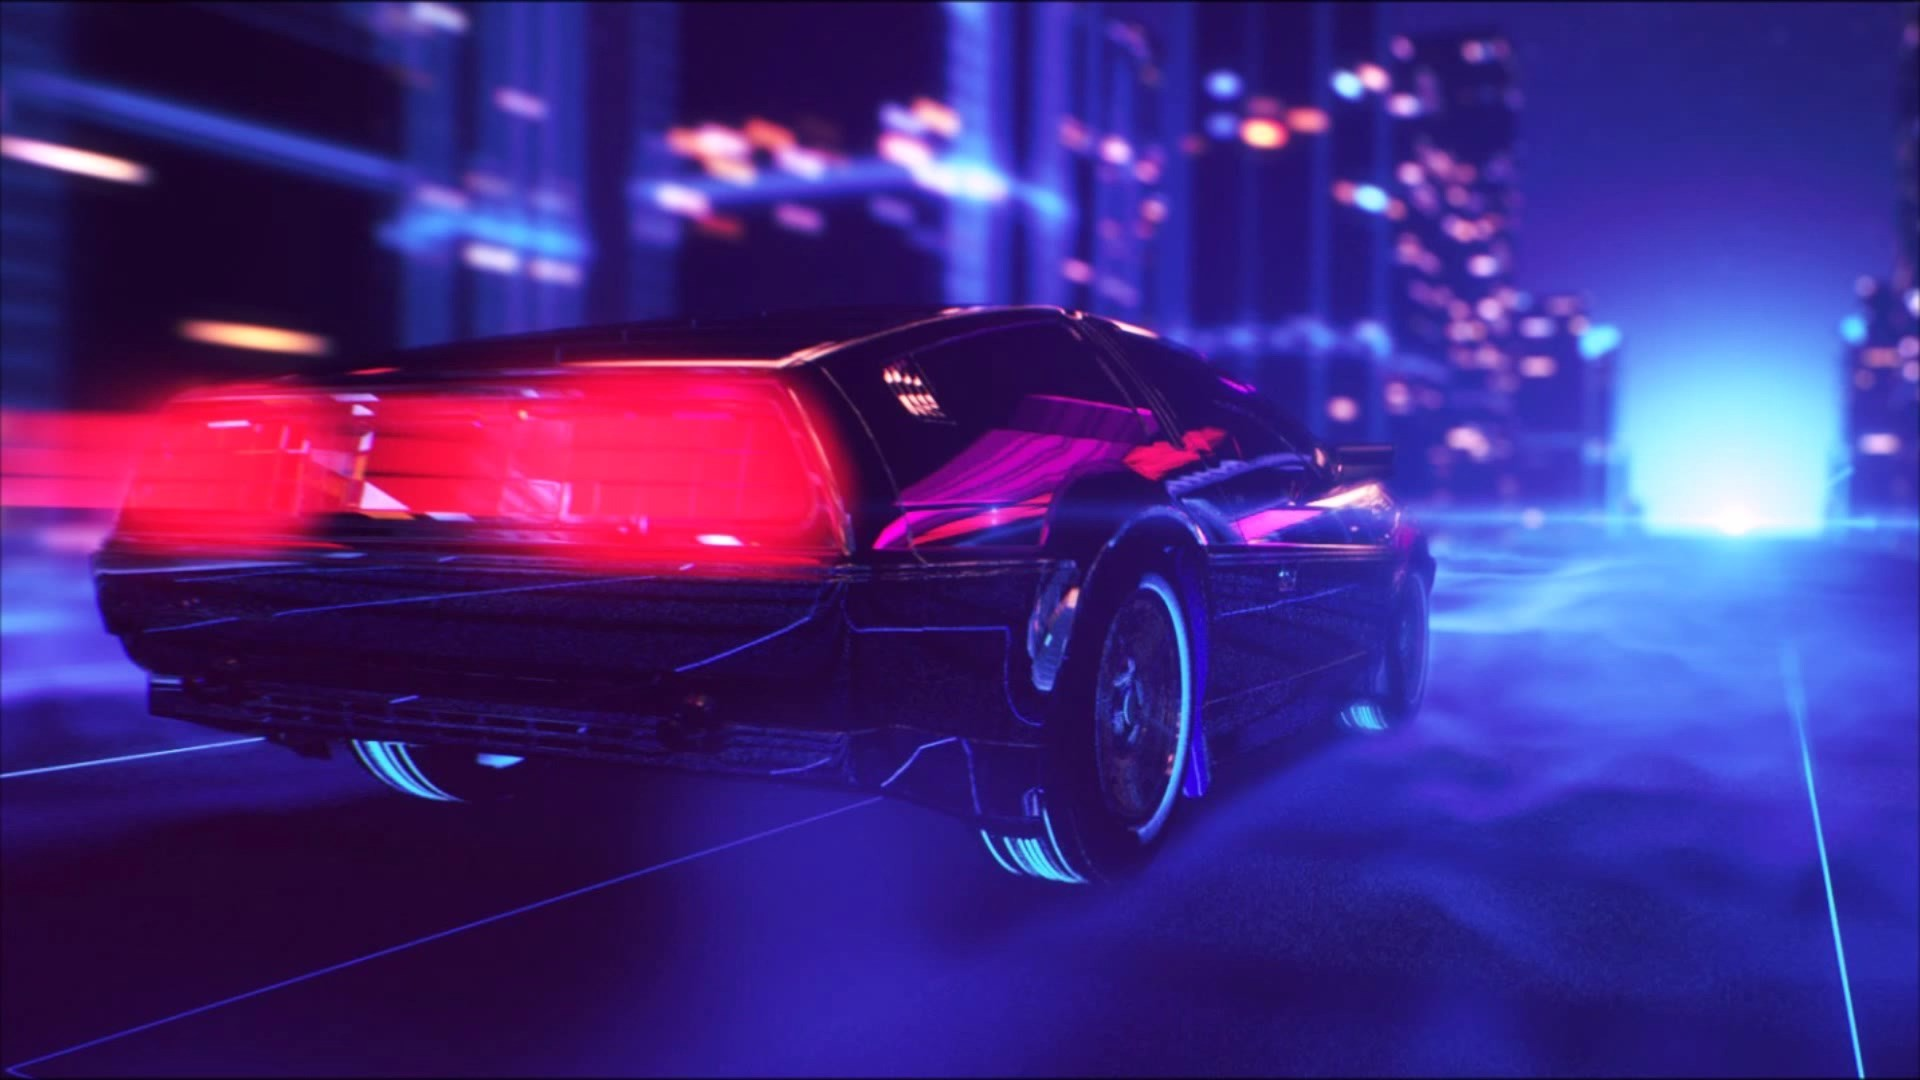 Synthwave Wallpaper (80+ images)